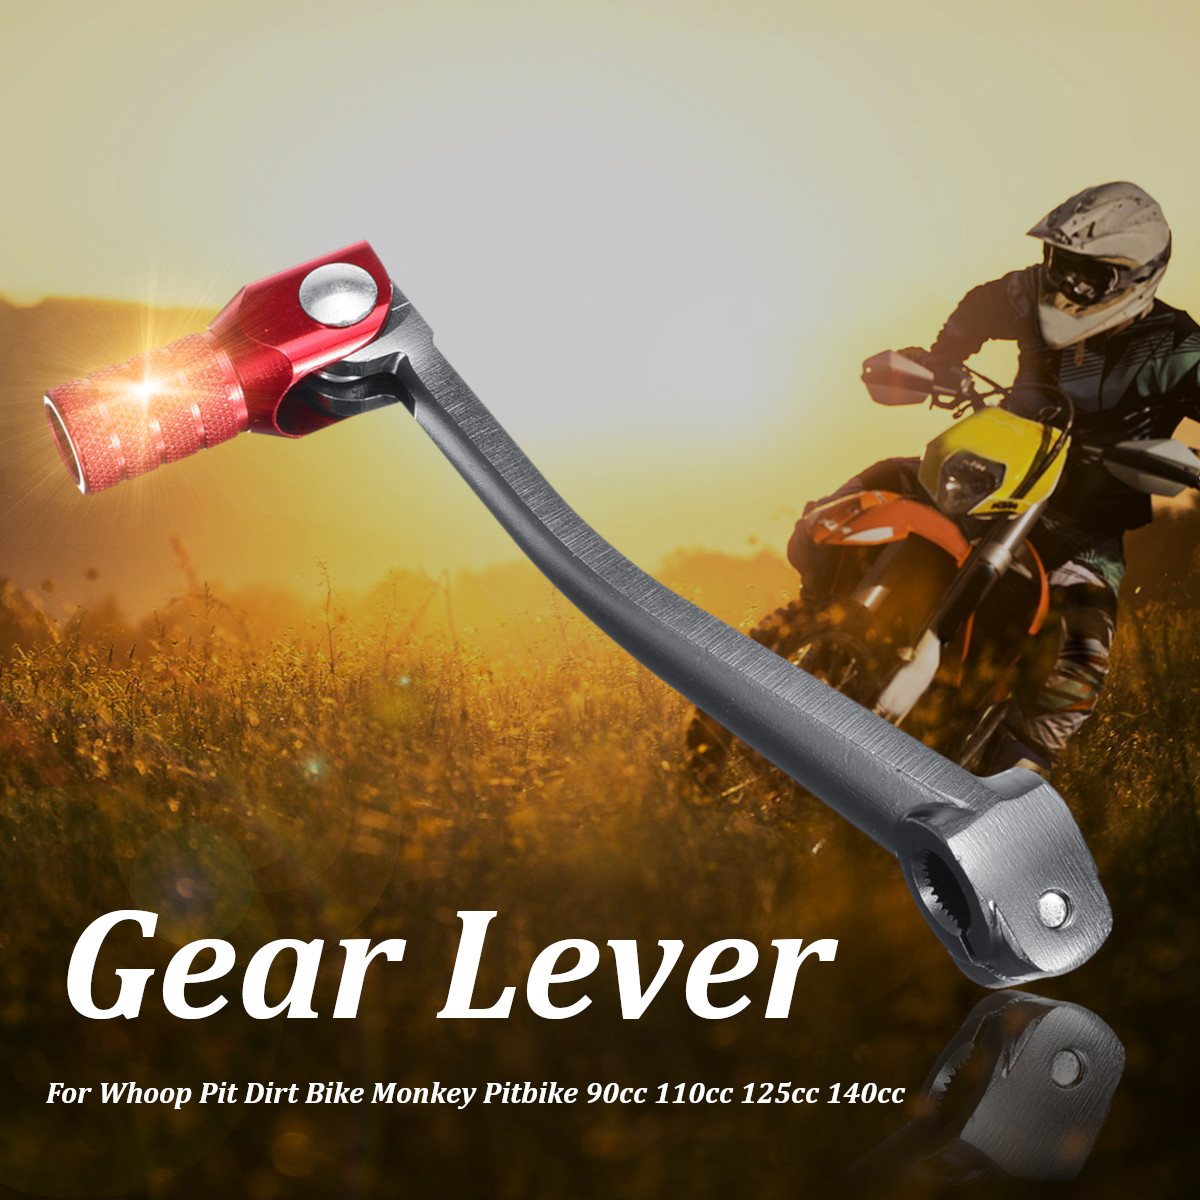 Red Gear Lever For Whoop Pit Dirt Bike Monkey Pitbike 90cc 110cc 125cc 140cc 4-stroke title=